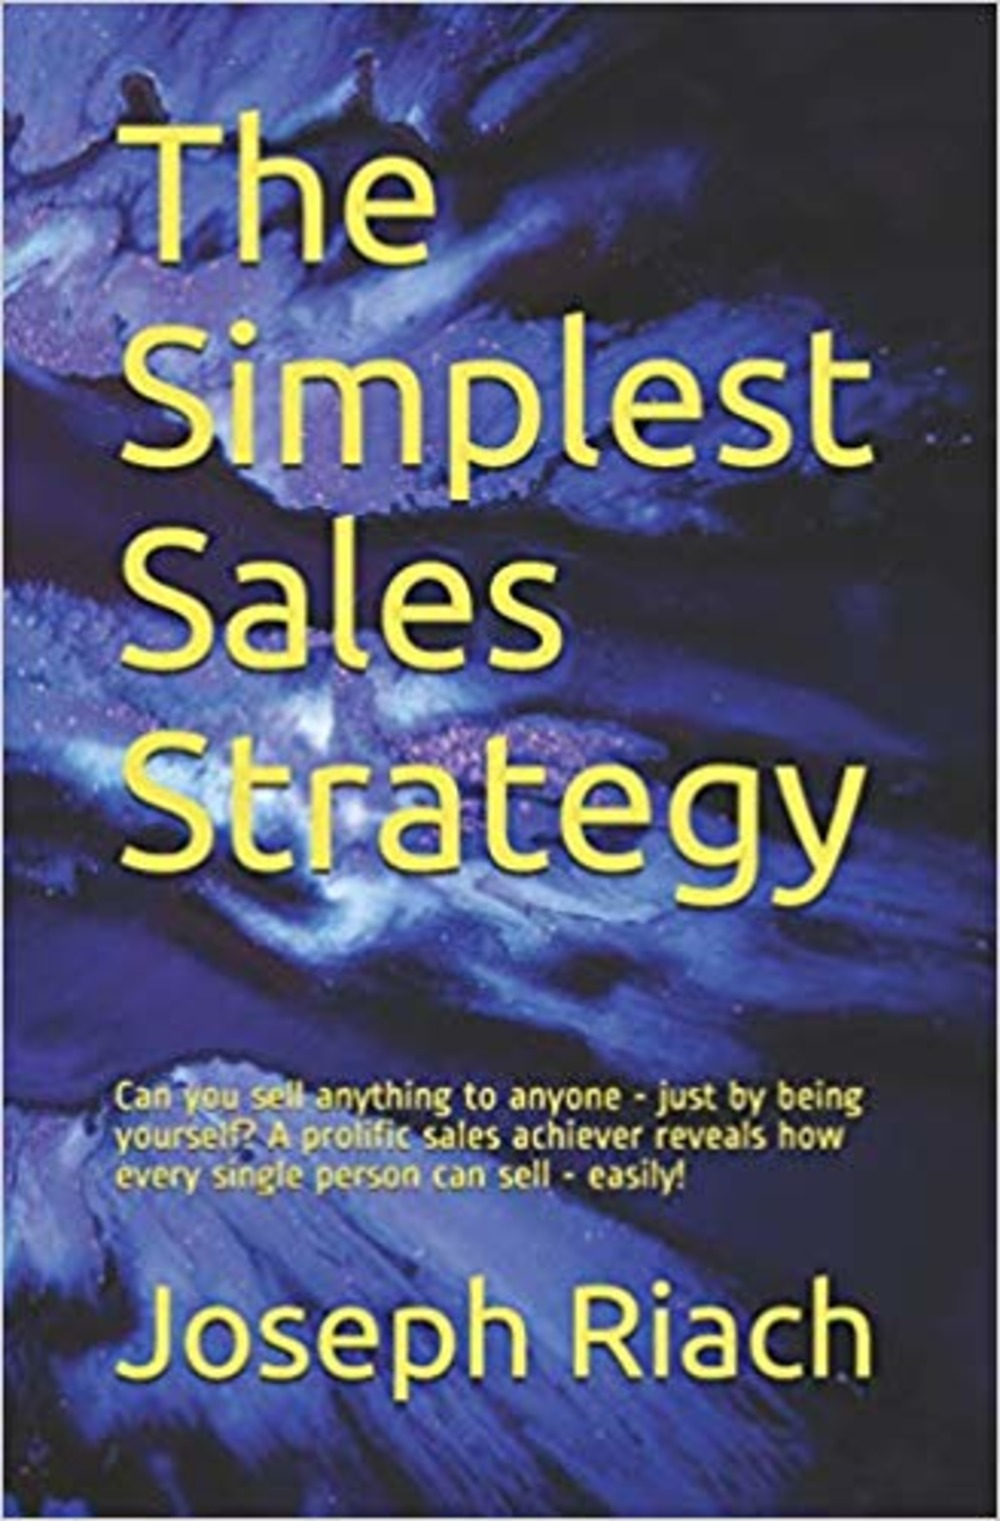 The Simplest Sales Strategy  is Tom Riach's paperback and ebook about how anyone can sell professionally or just improve their life